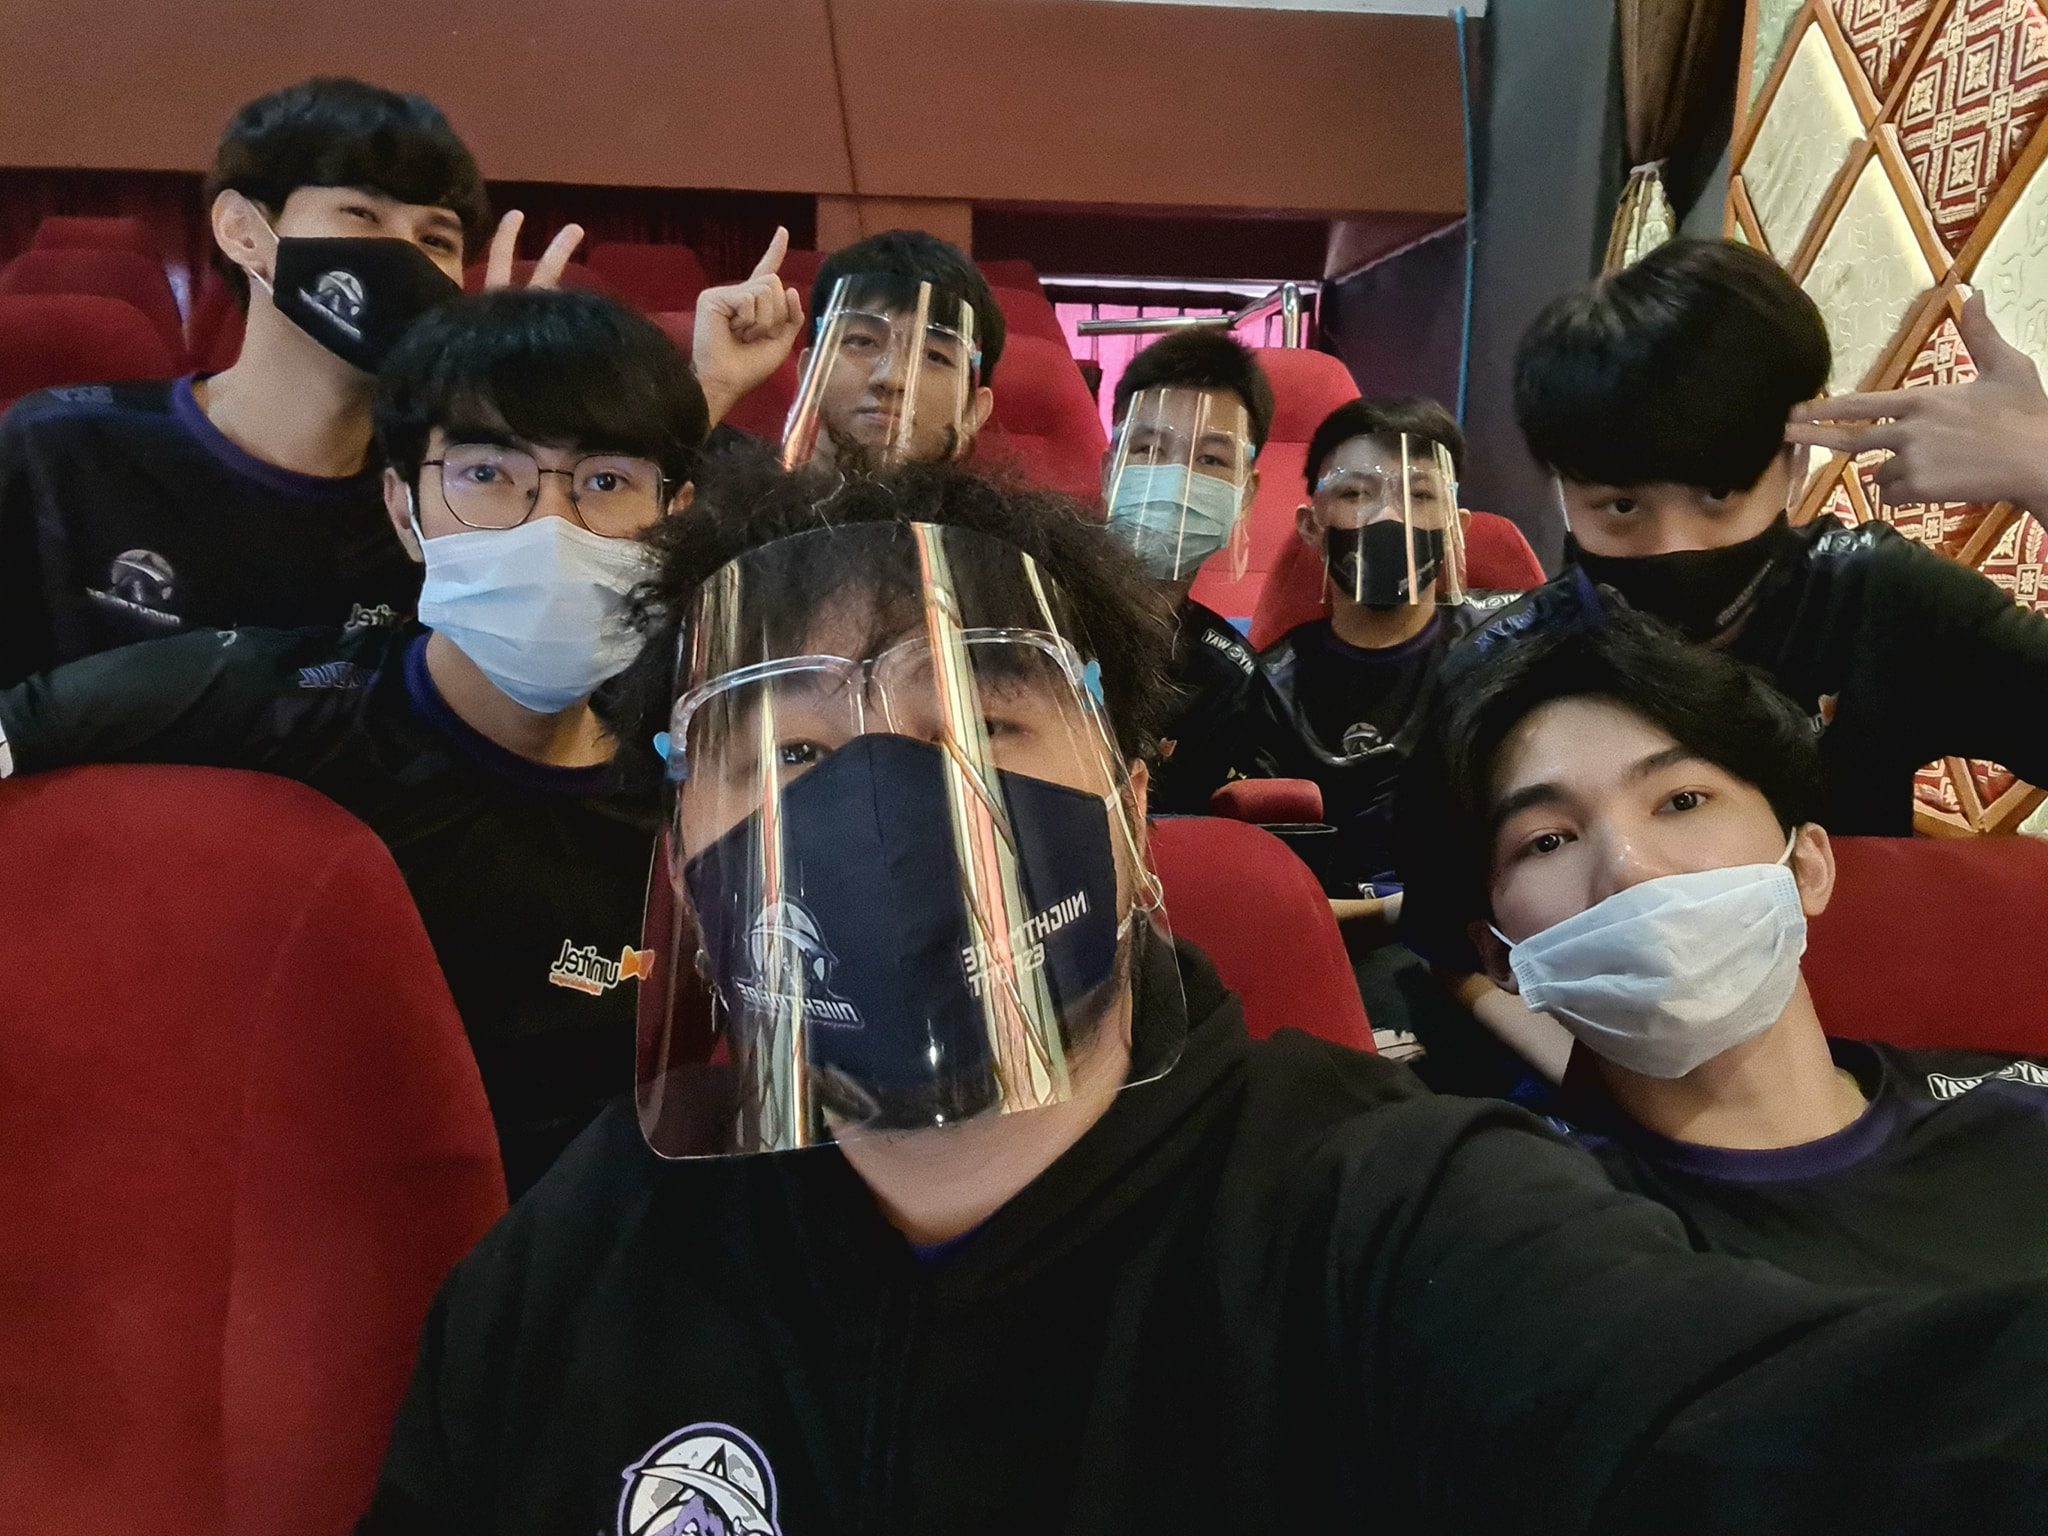 Niightmare Esports players with masks on